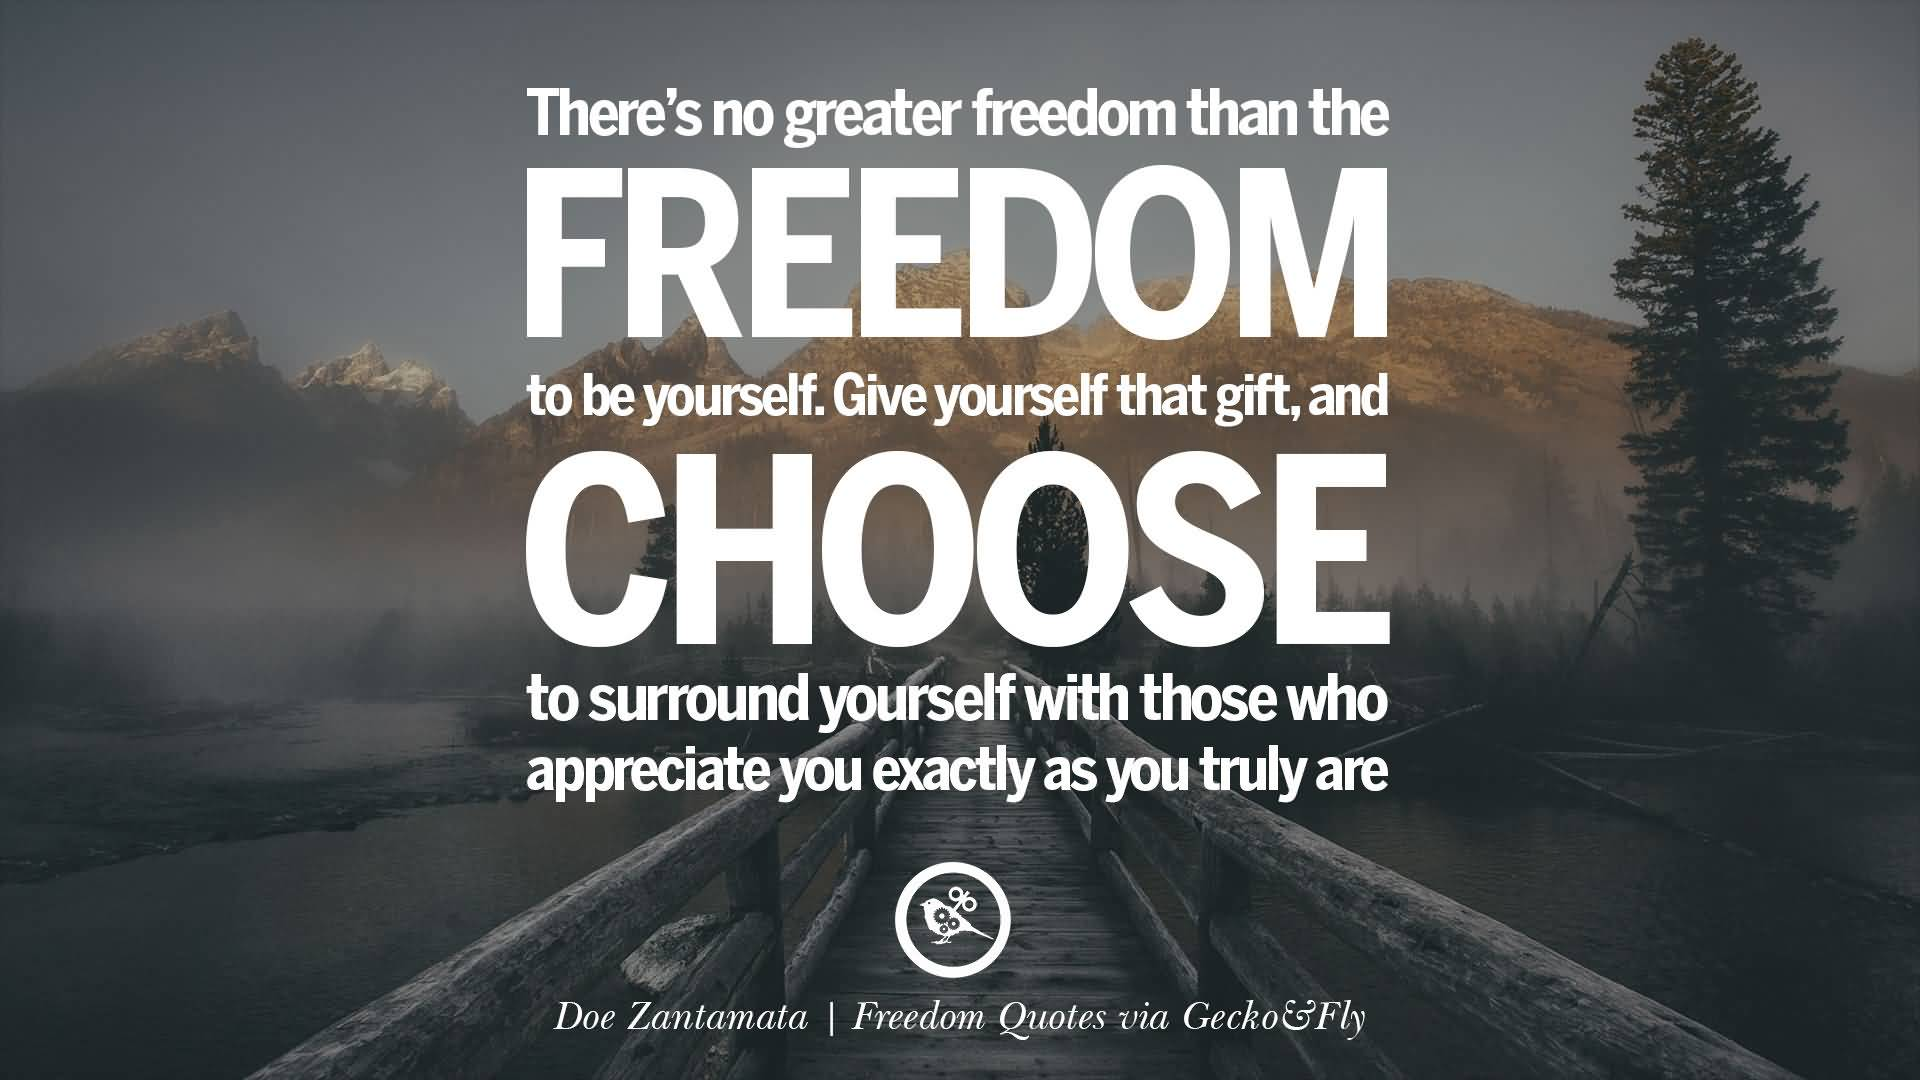 Freedom sayings there's no greater freedom than the freedom to be yourself